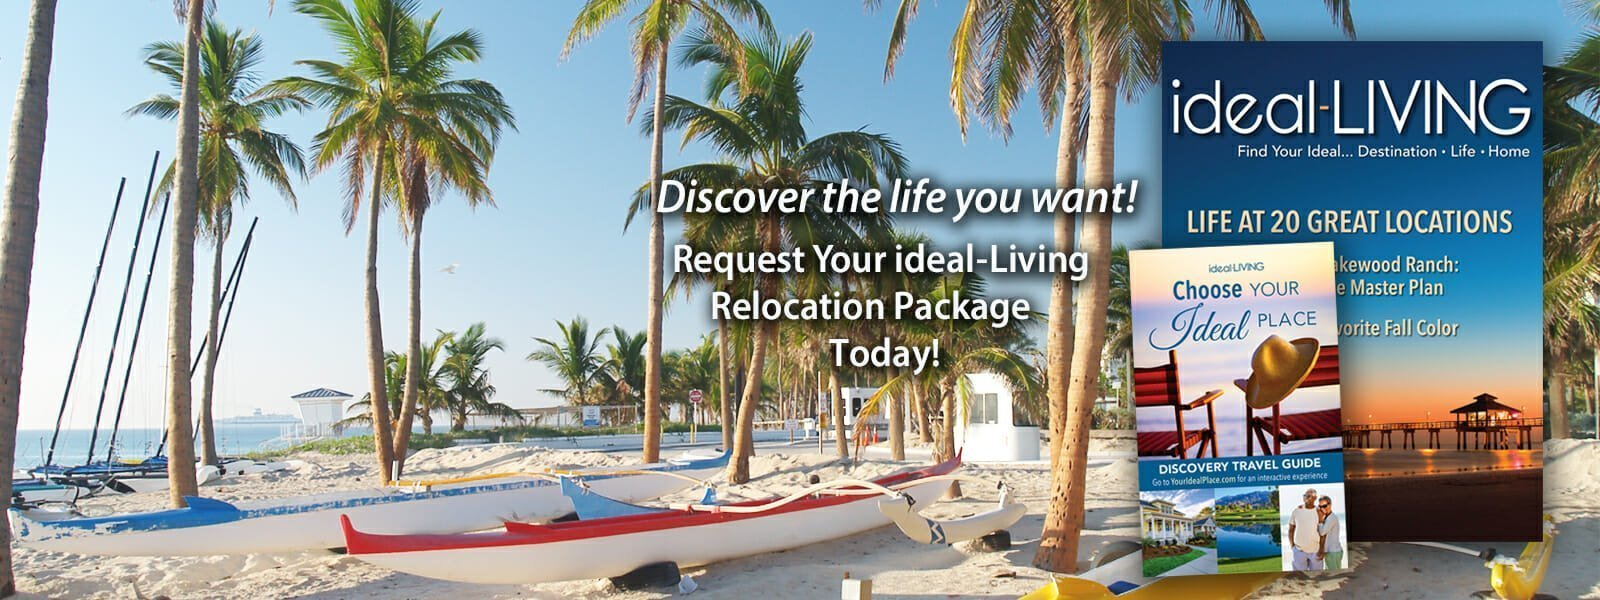 Request Your Complimentary ideal-LIVING Relocation Package